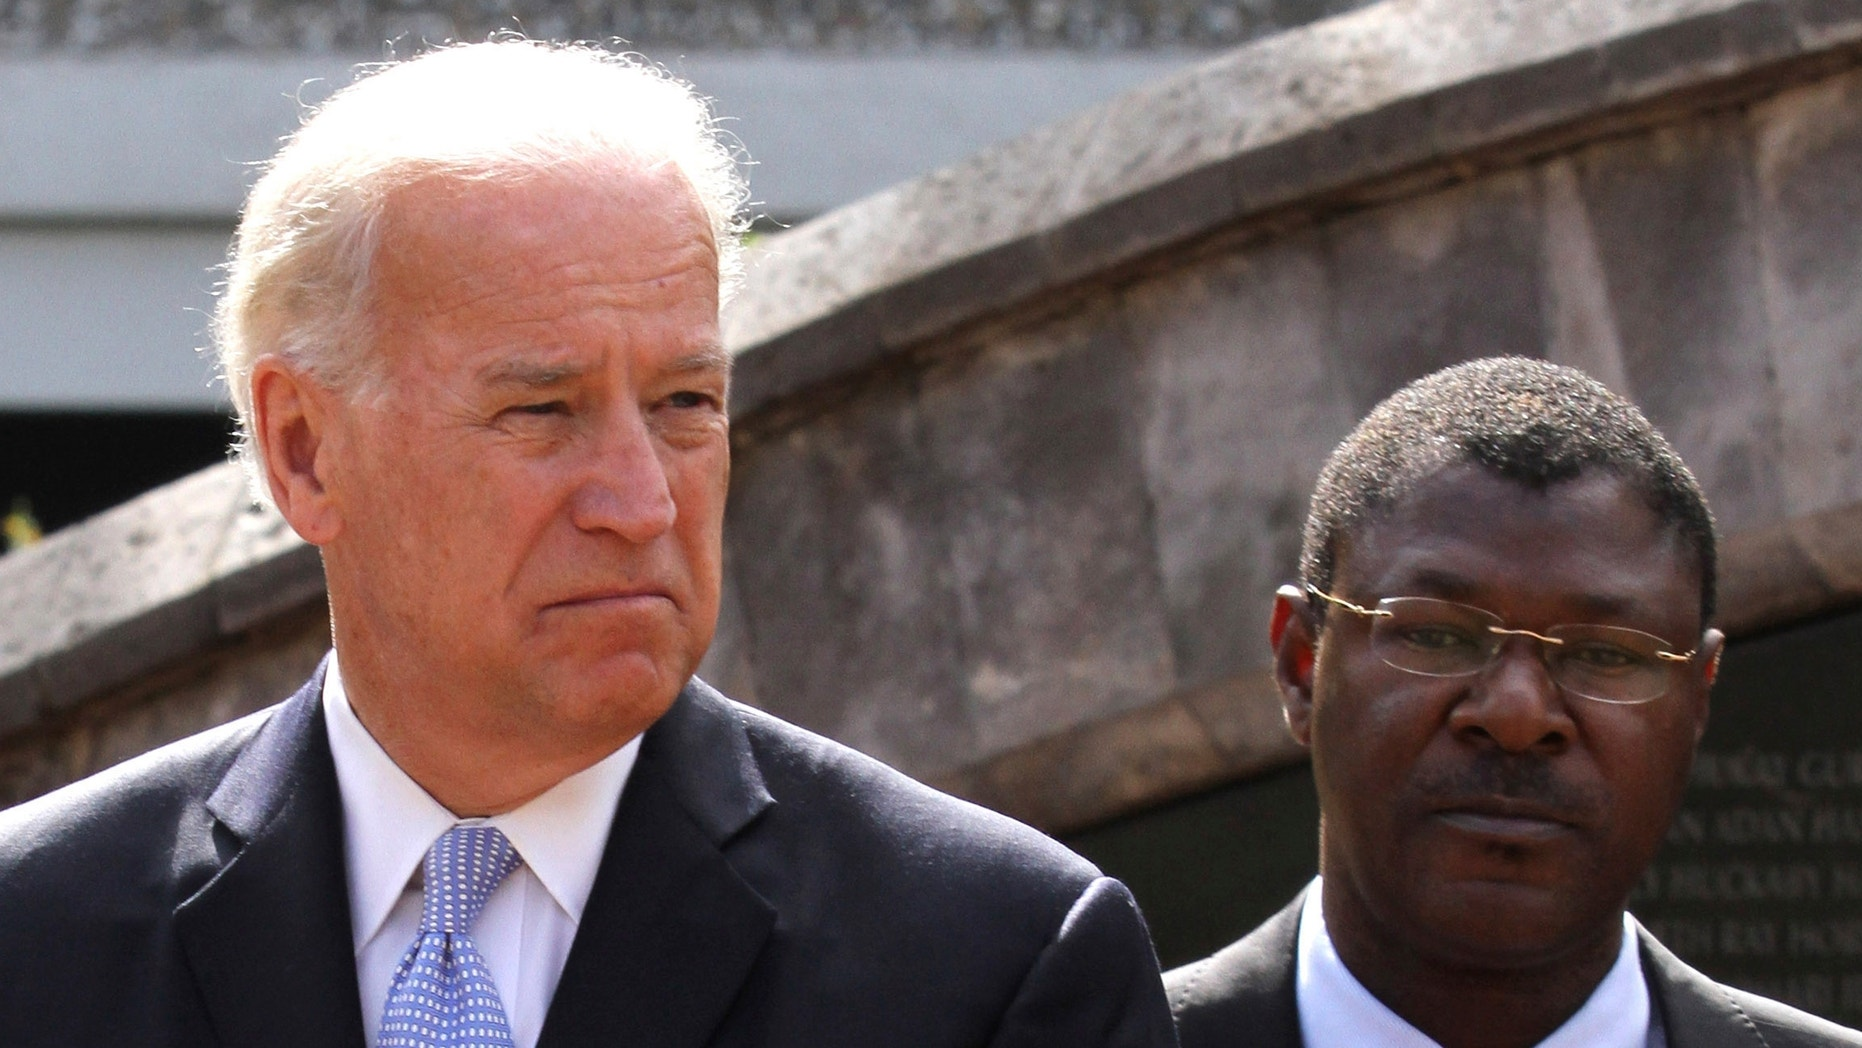 Vice President Biden and Kenyan Foreign Affairs Minister Wetangula look on after laying a wreath at the site of the former U.S. Embassy in Nairobi. While in Kenya, Biden expressed support for the proposed new constitution, which Kenya approved on Aug. 4. (Reuters)